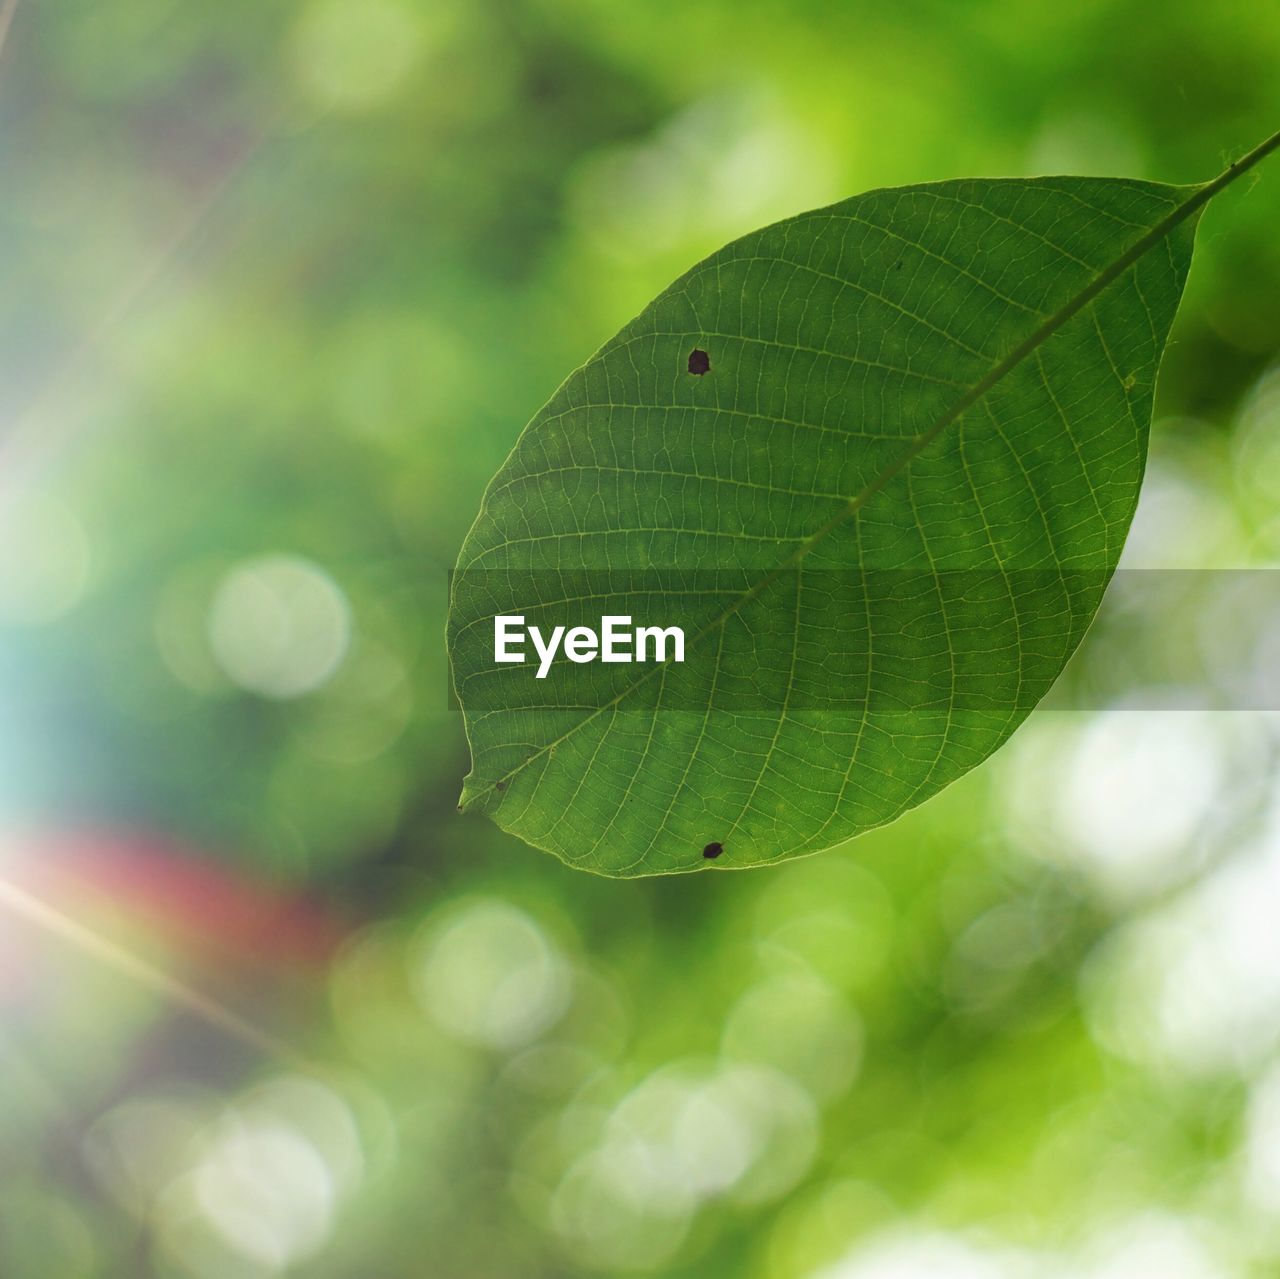 leaf, plant part, green color, close-up, plant, growth, day, focus on foreground, nature, beauty in nature, no people, selective focus, outdoors, leaf vein, tranquility, vulnerability, fragility, freshness, leaves, lens flare